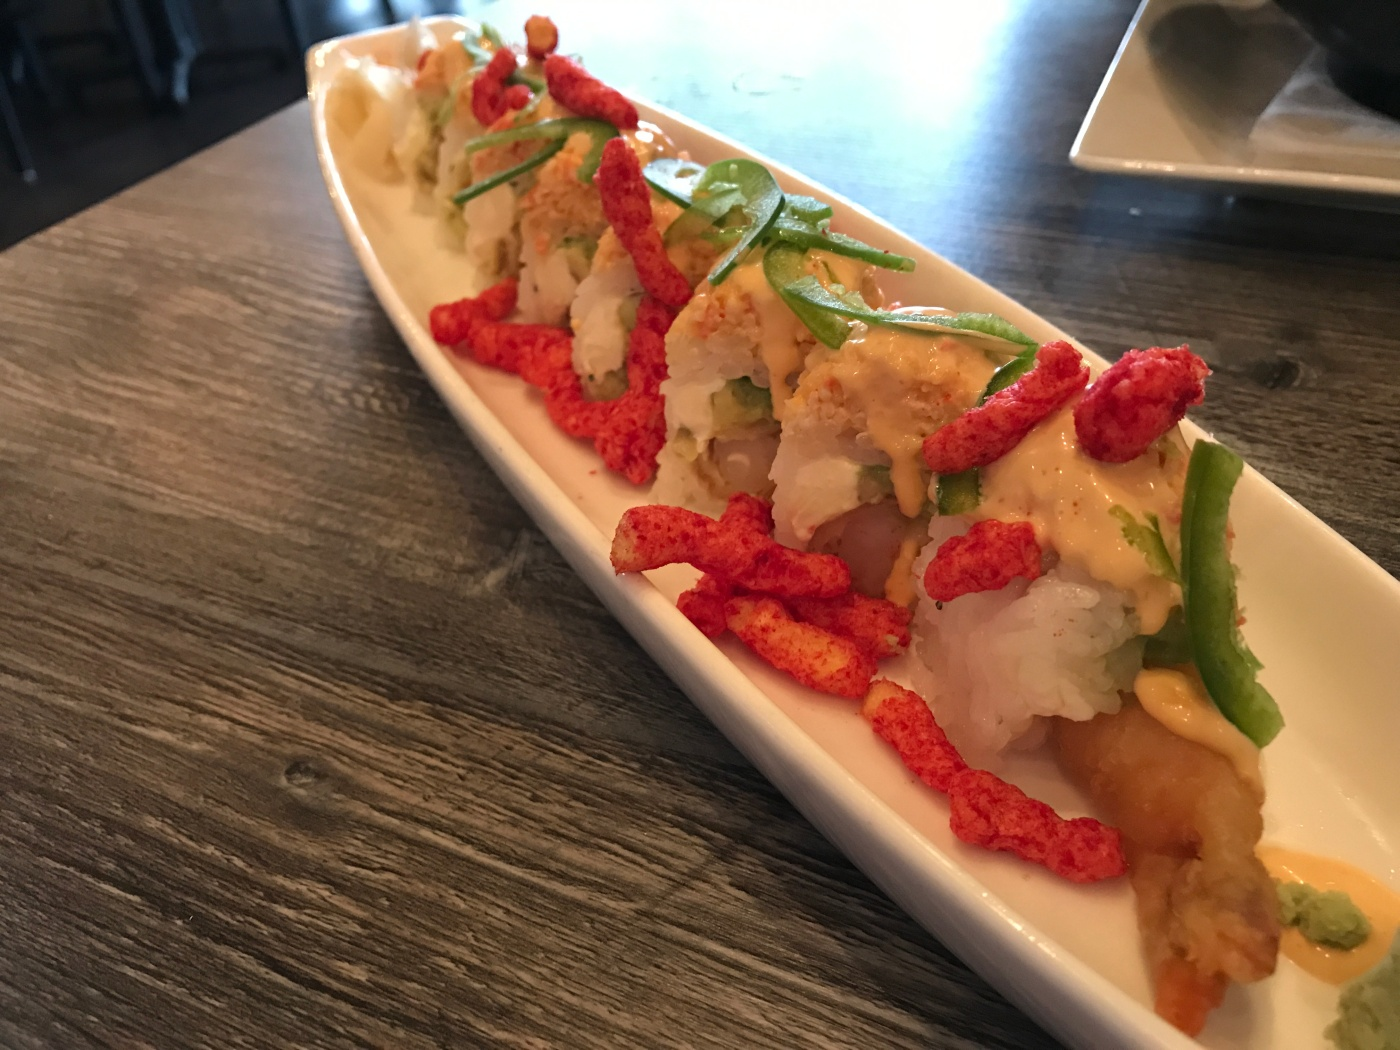 Packin' Quite a Crunch - The Flamin' Hot Cheetos Roll at Sushi Confidential in Campbell, California